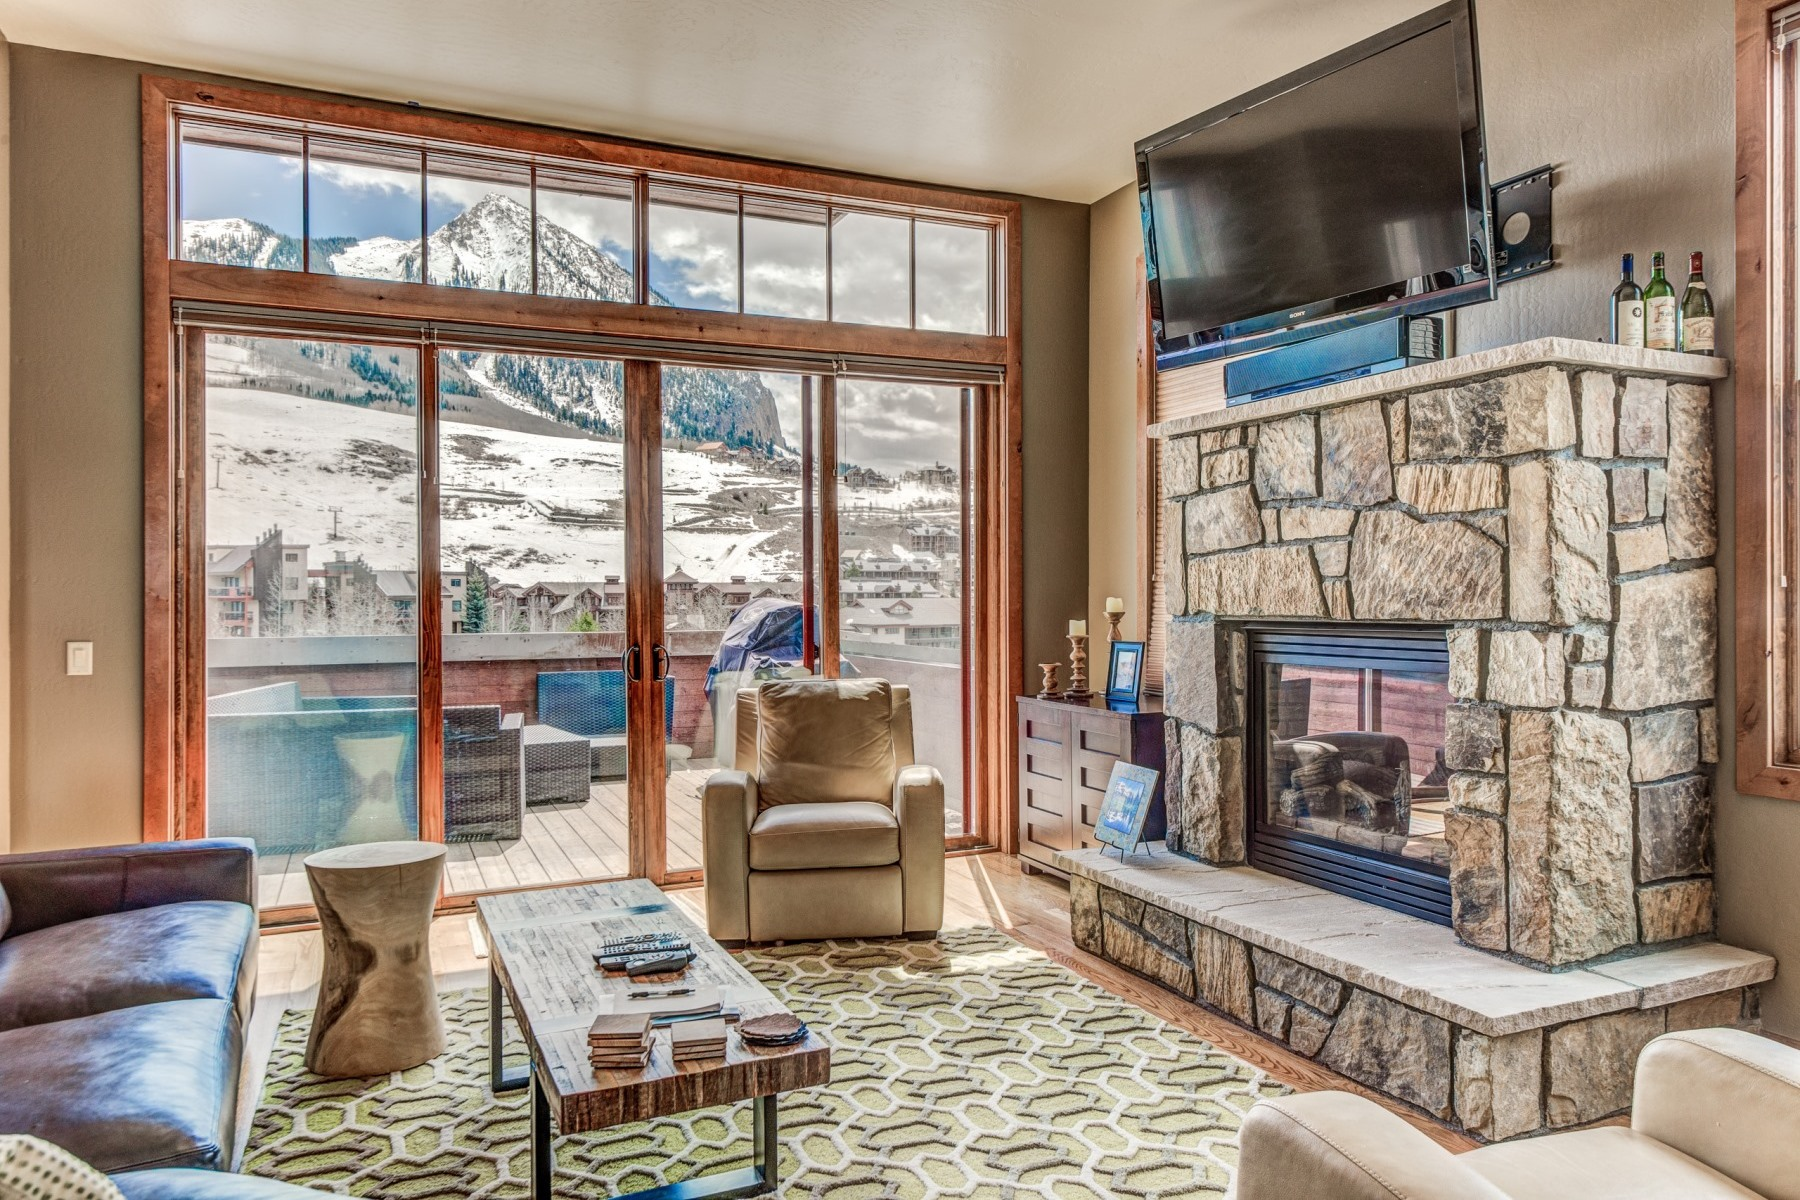 Casa unifamiliar adosada (Townhouse) por un Venta en Sophisticated Townhouse 118 Snowmass Road Unit 23A Mount Crested Butte, Colorado, 81225 Estados Unidos